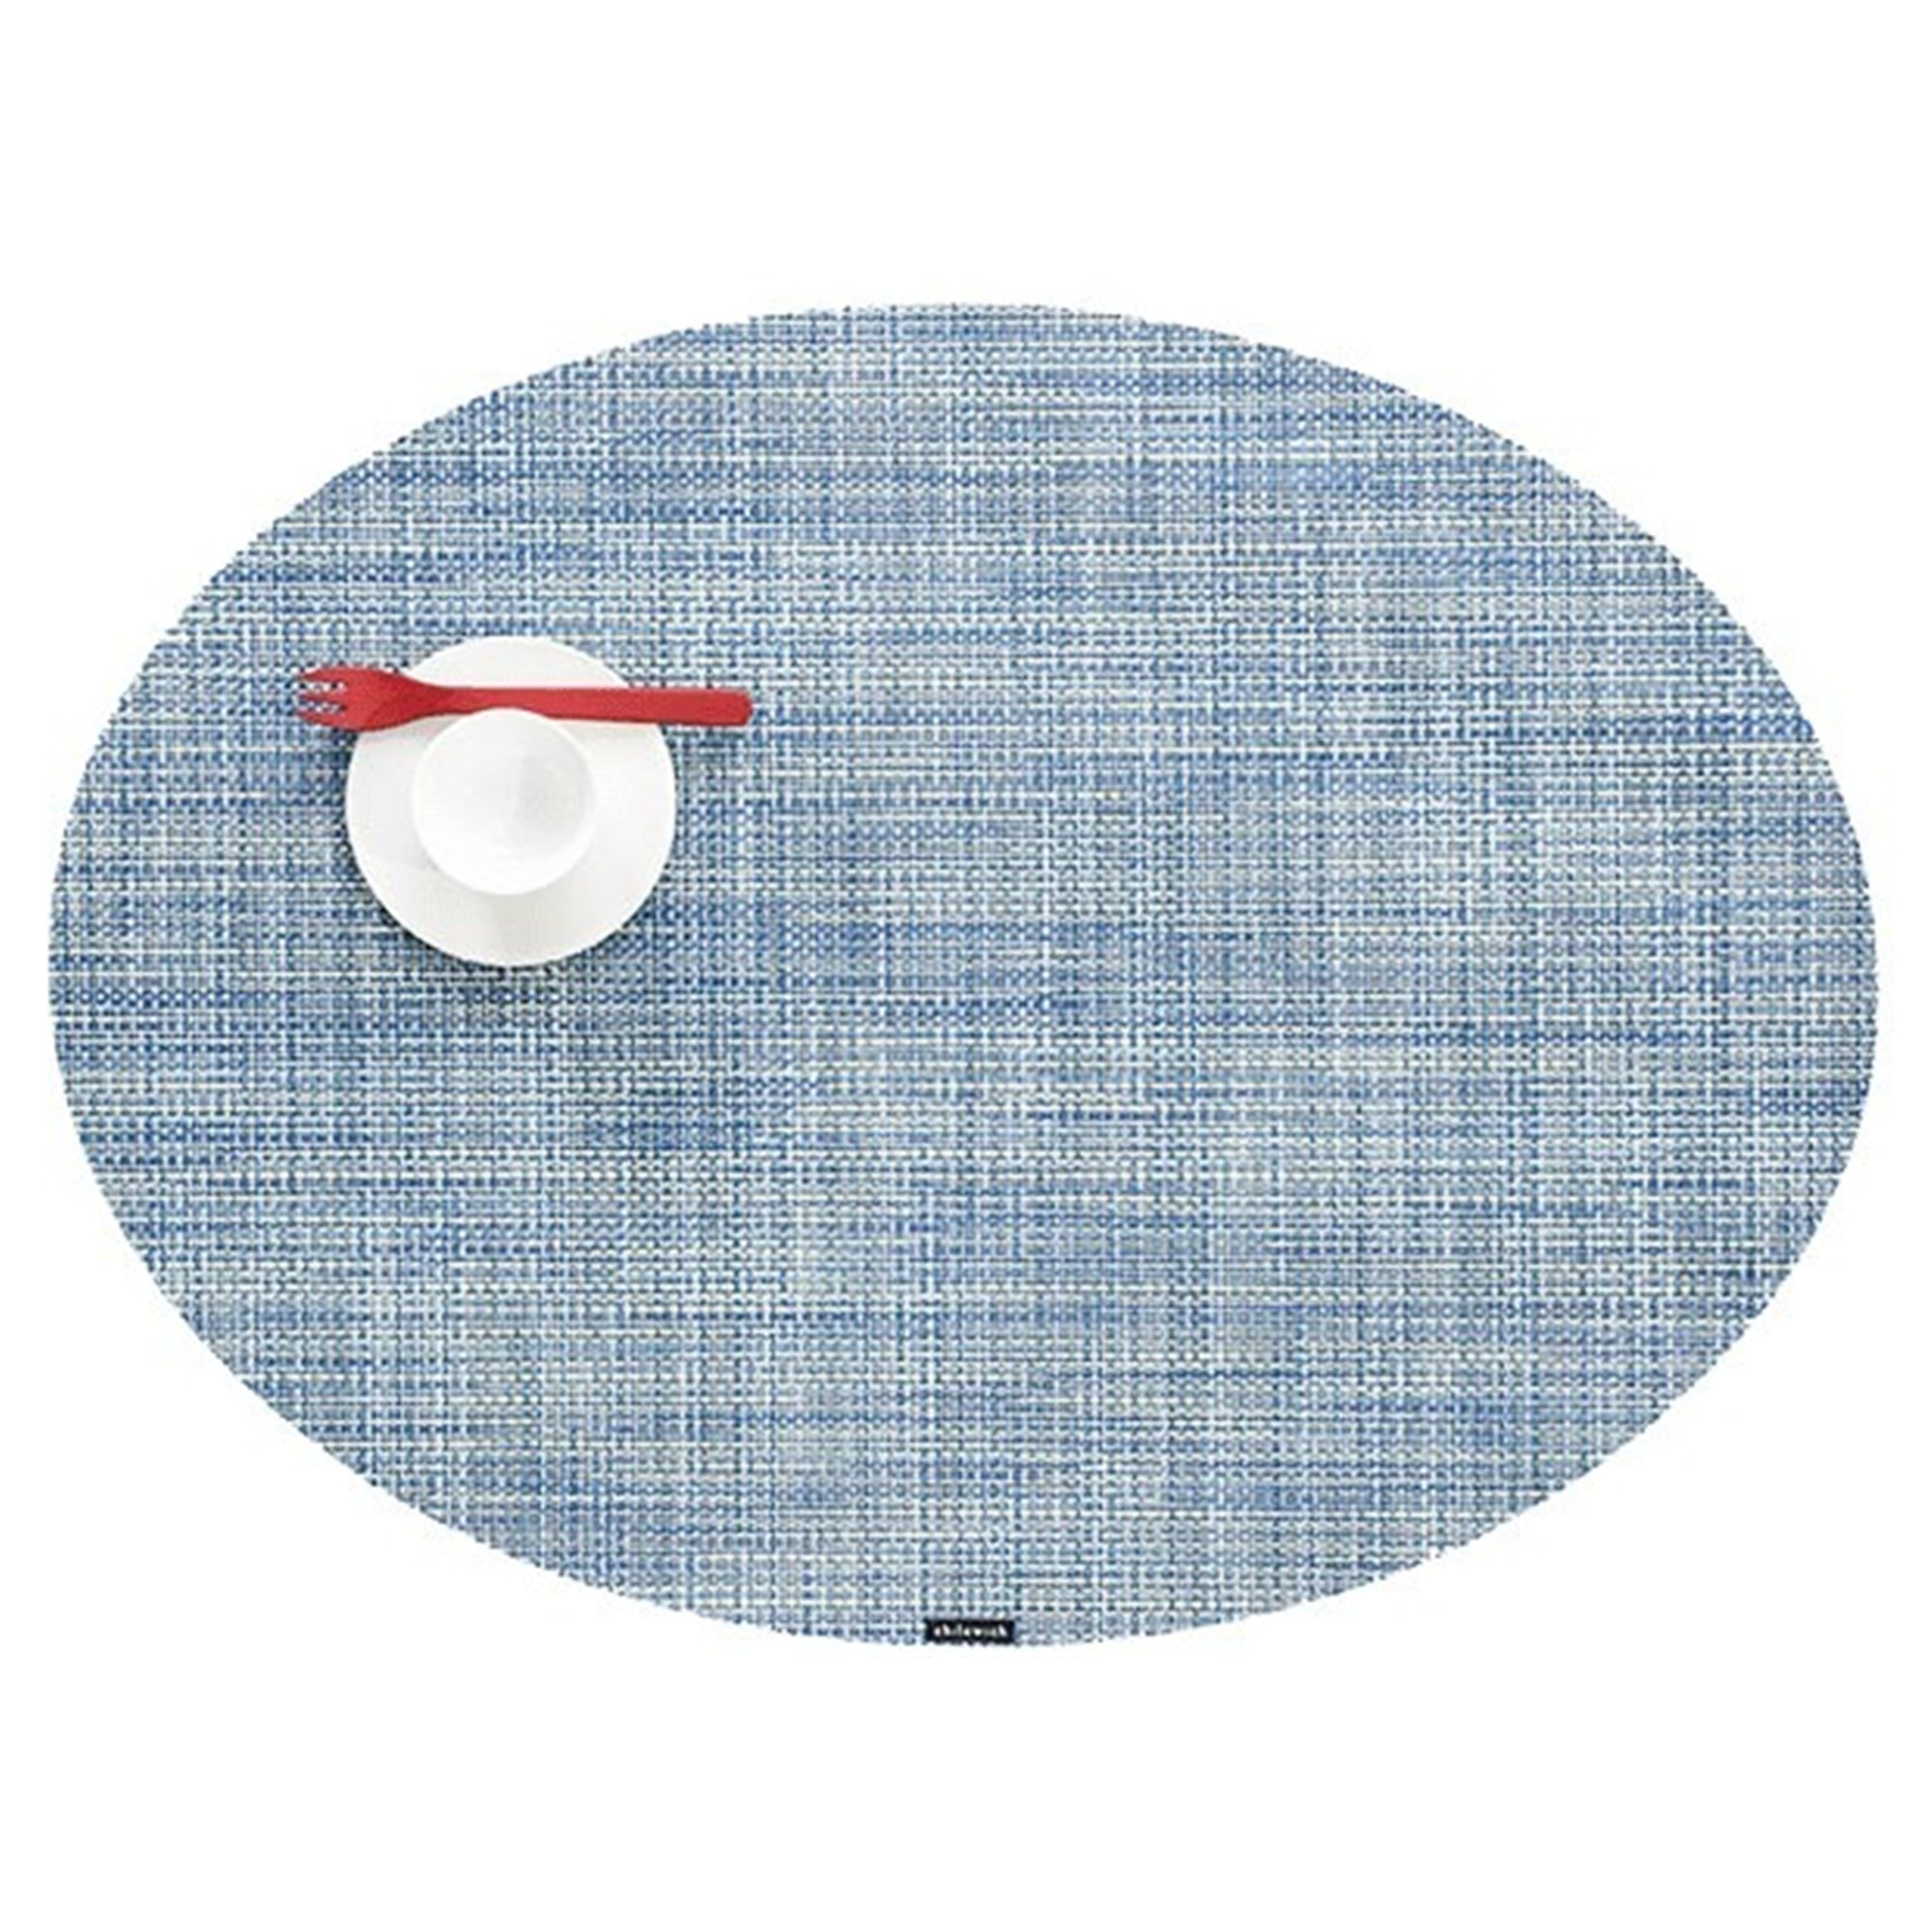 Mini Basketweave Placemats: Oval + Chambray